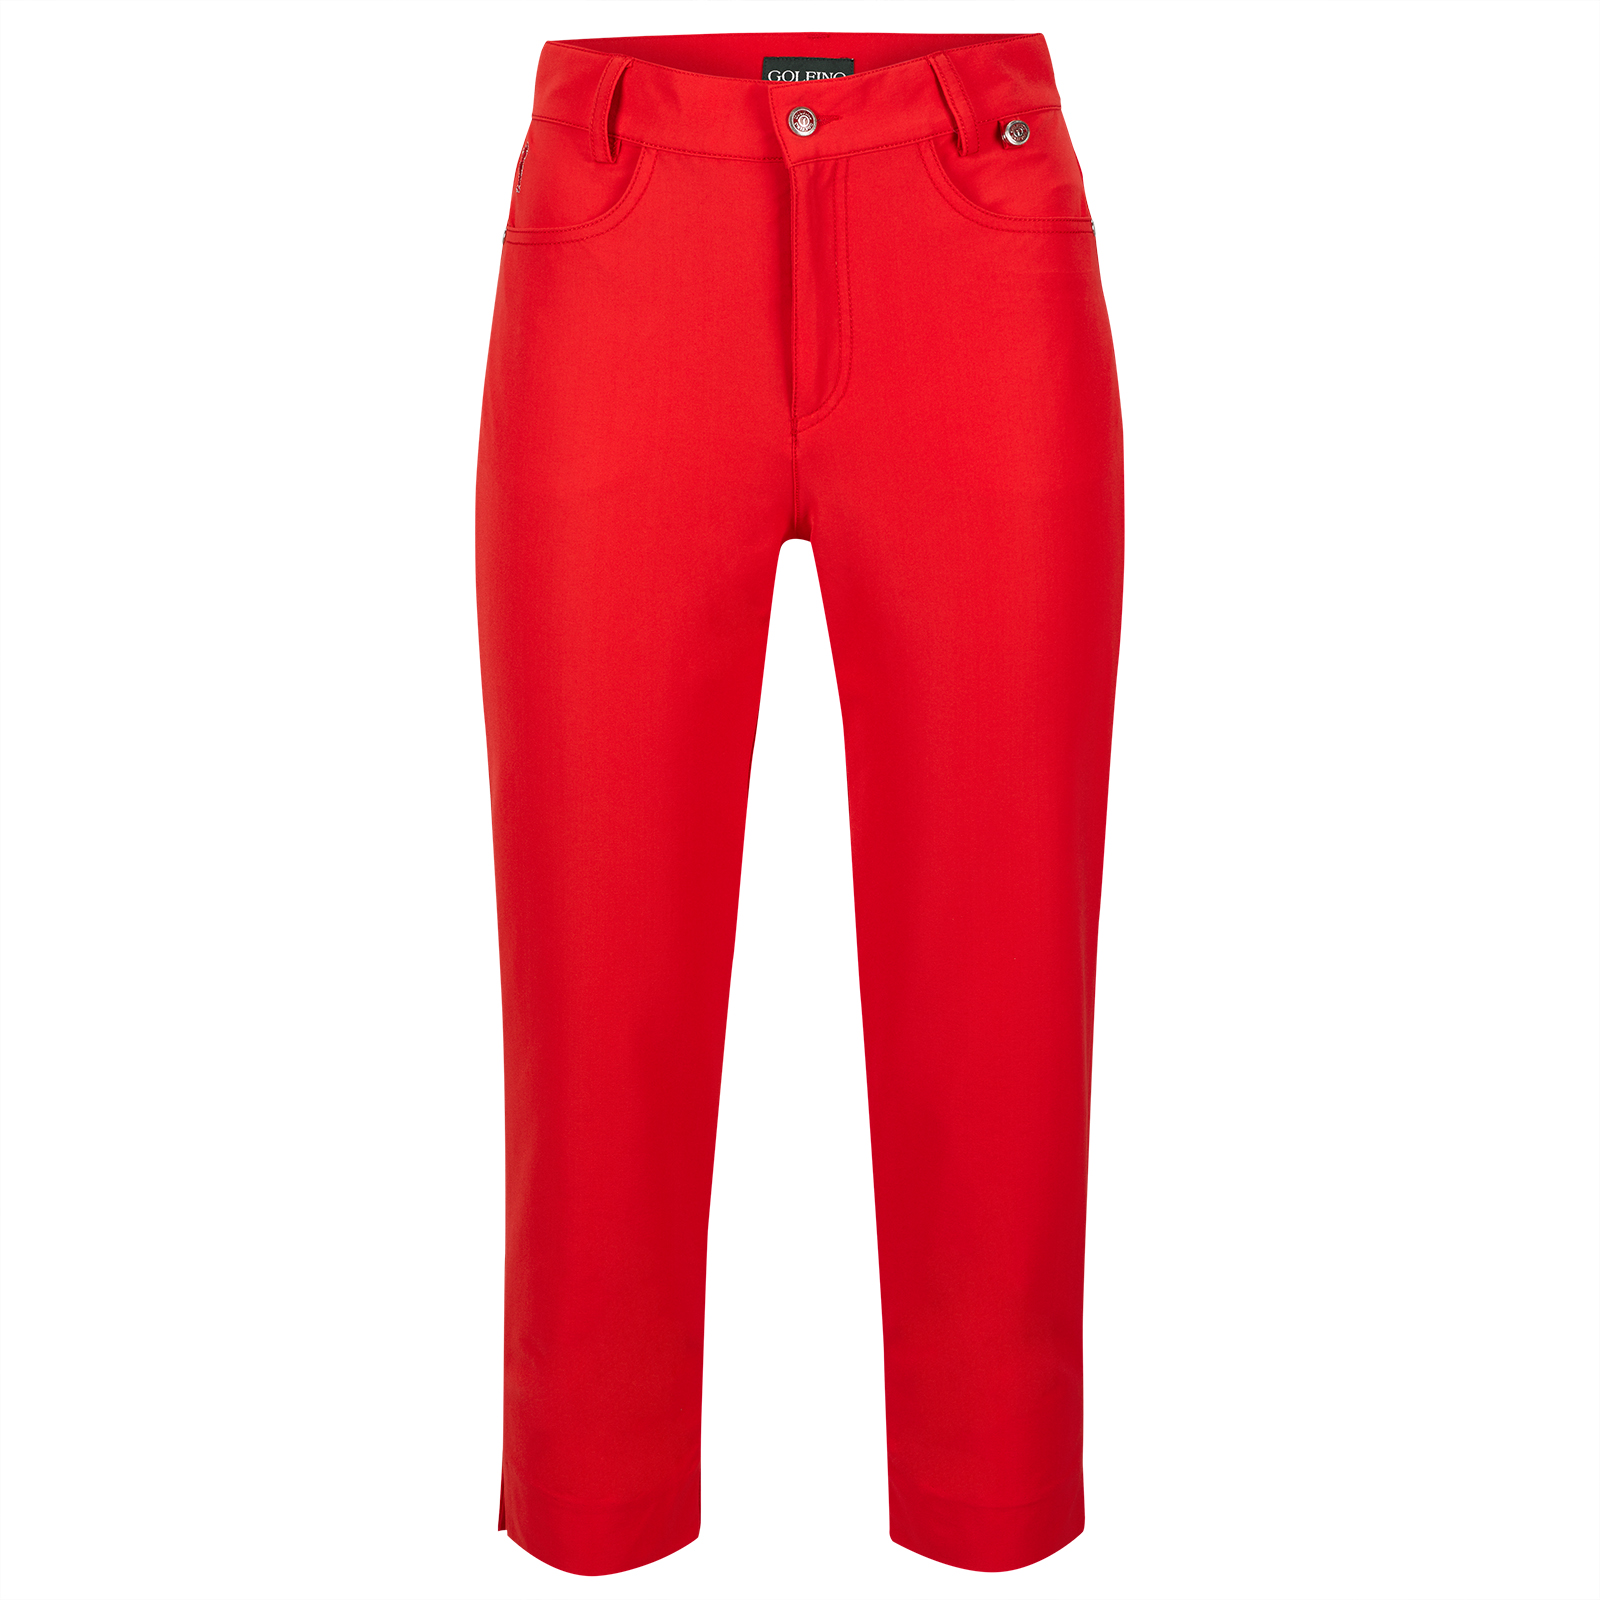 Damen Stretch-Caprihose mit UV-Protection Sofileta®